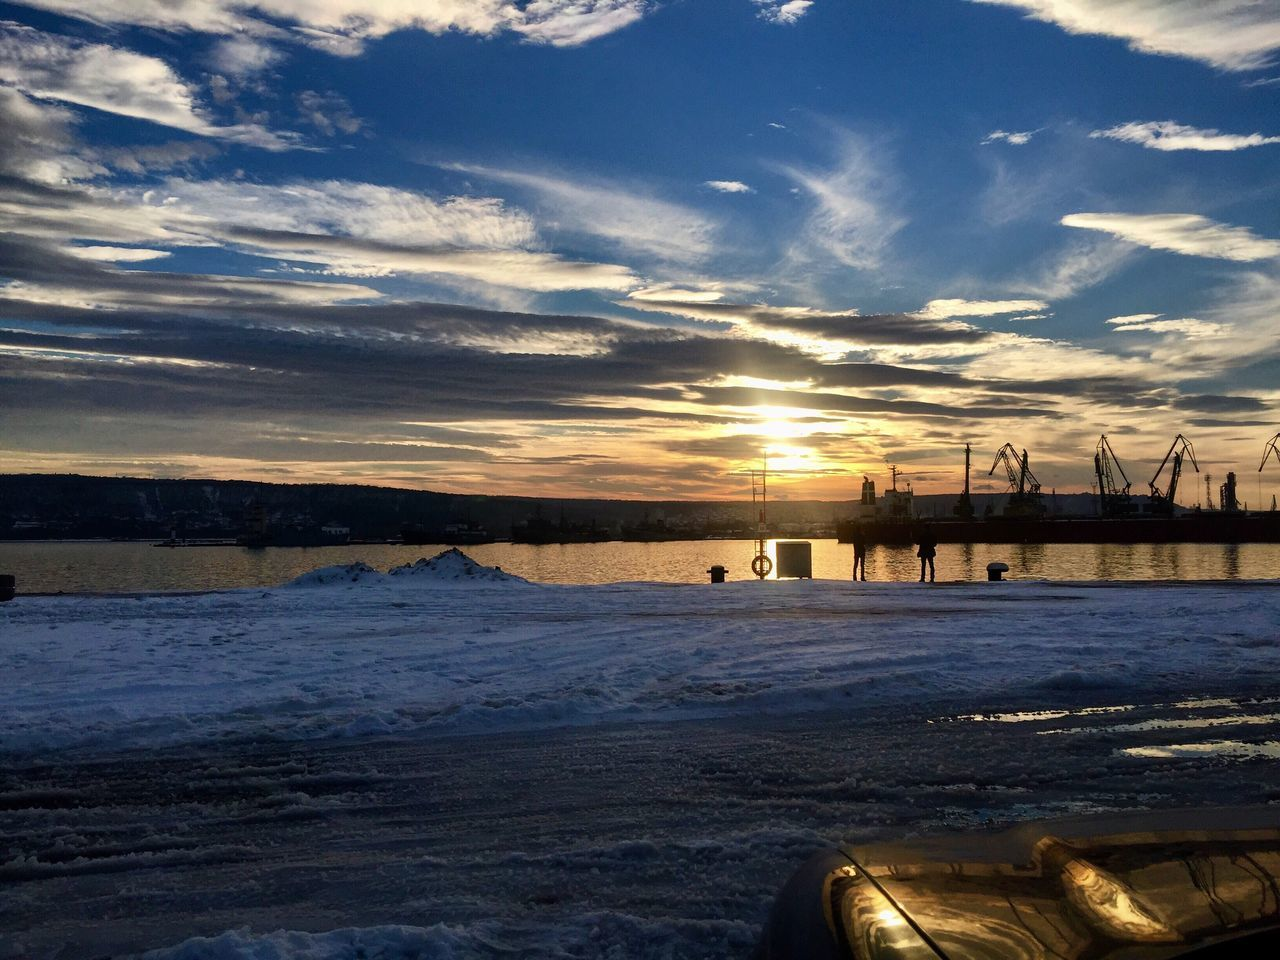 Cold Temperature Winter Sunset Beauty In Nature Snow Nature Sky Frozen Cloud - Sky Tranquility No People Water Ice Tranquil Scene Outdoors Scenics Sun Frozen Lake Cold Day